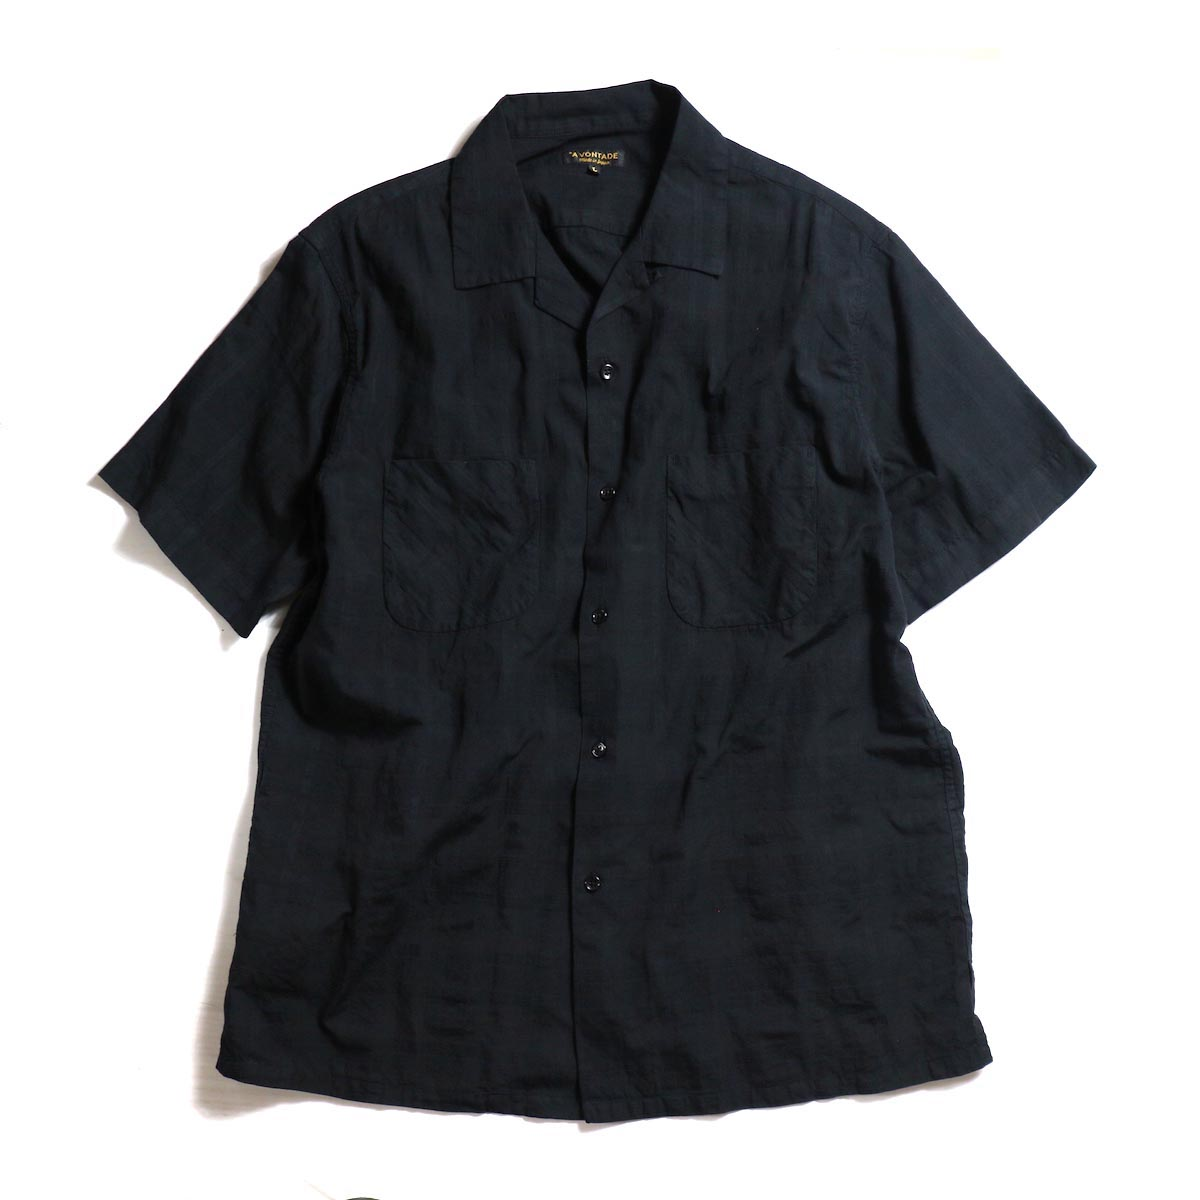 A VONTADE / Dobby Open Shirts S/S -Black